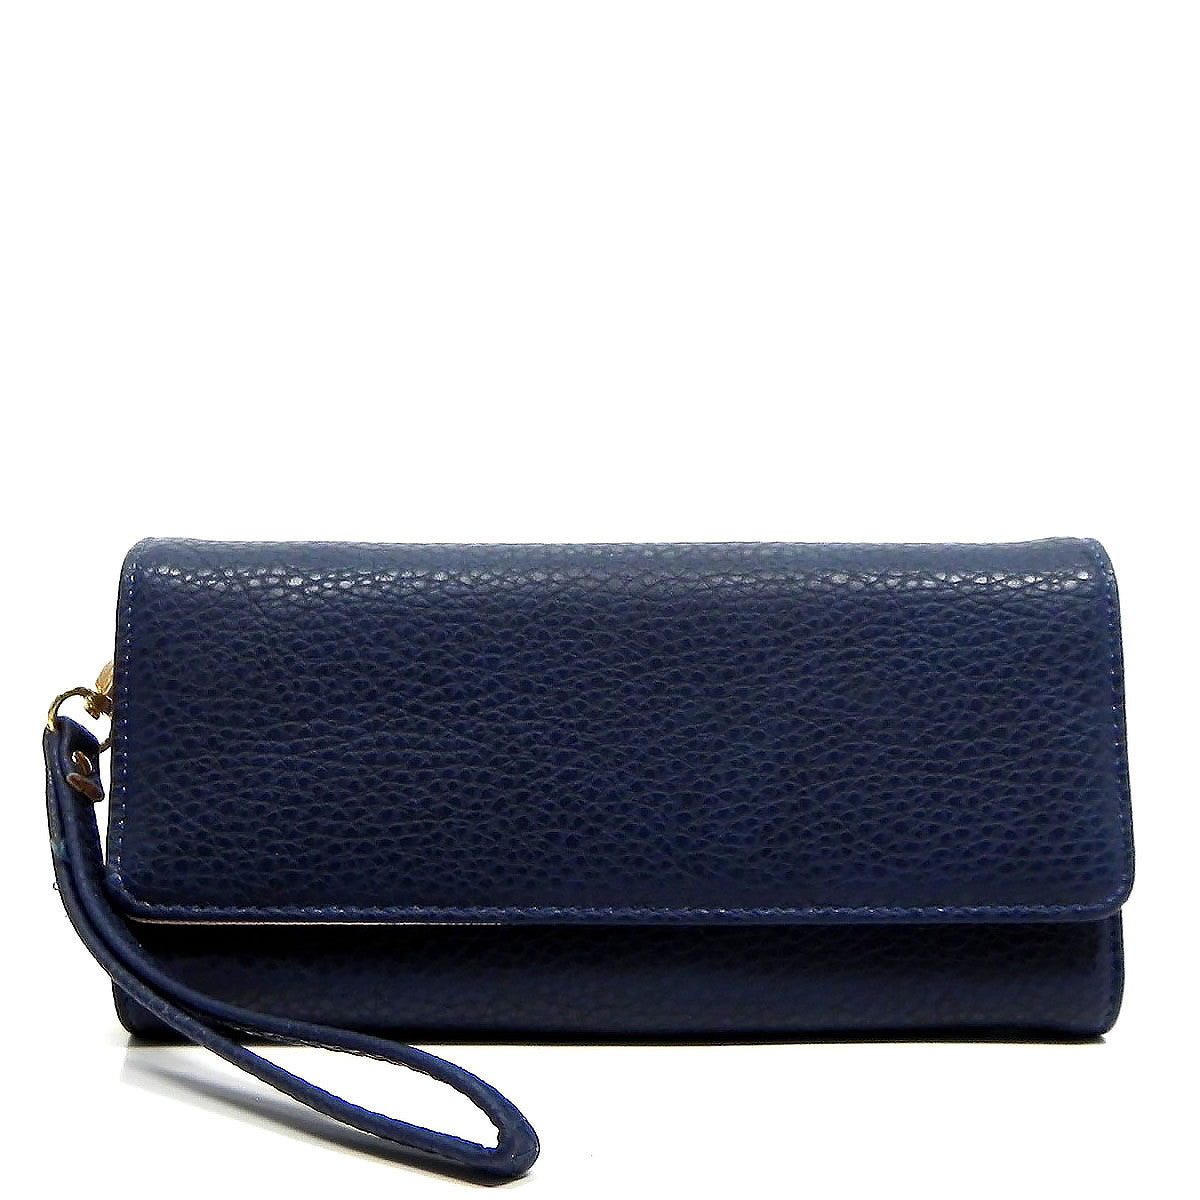 Marley Wristlet in Navy